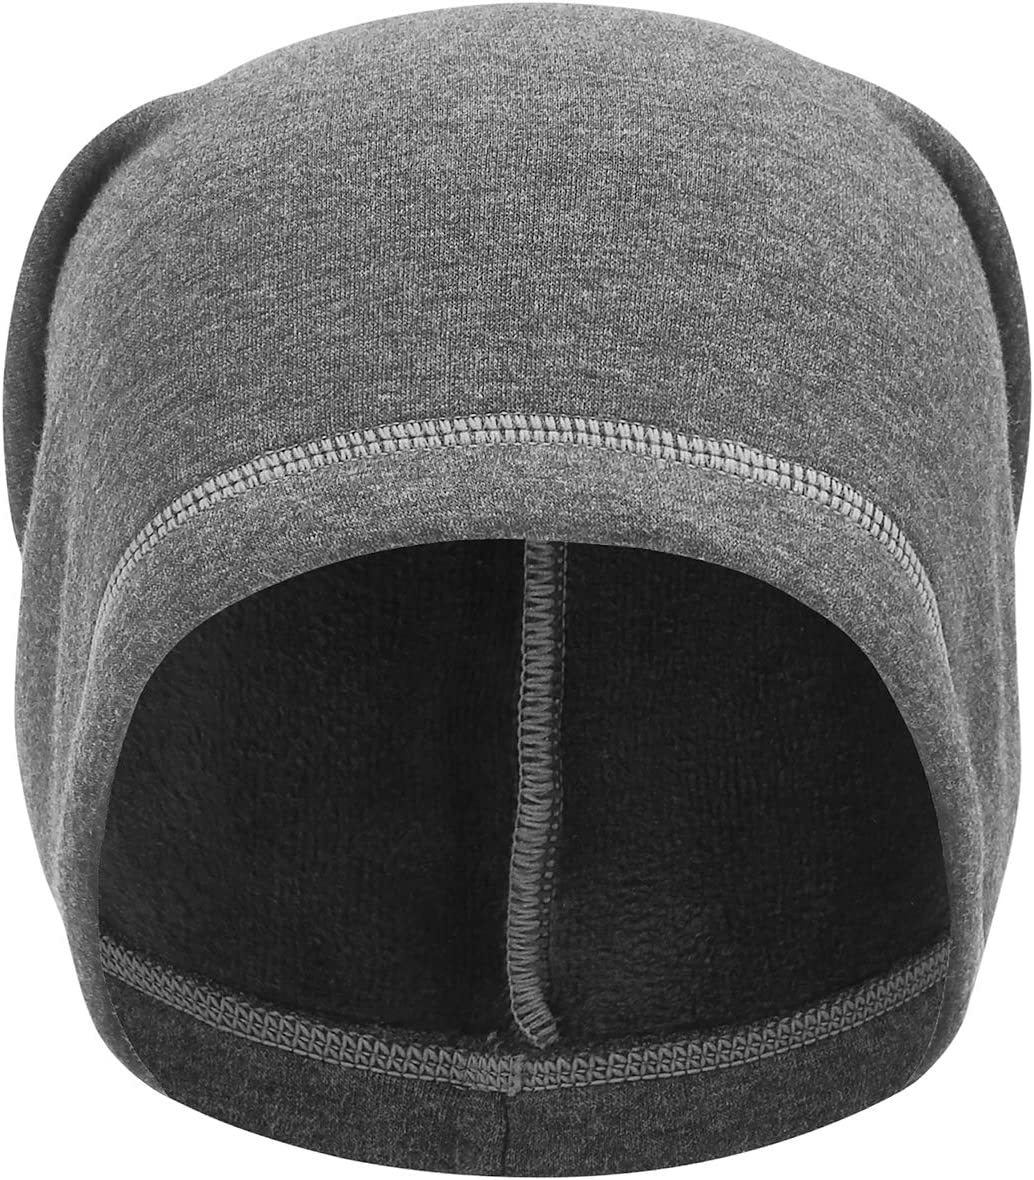 TAGVO Winter Beanie Hat Thermal Running Caps Elastic Cycling Hat with Soft Fleece Lining Warm Windproof Skull Cap Helmet Liner Ski Beanie for Men and Women Universal Size